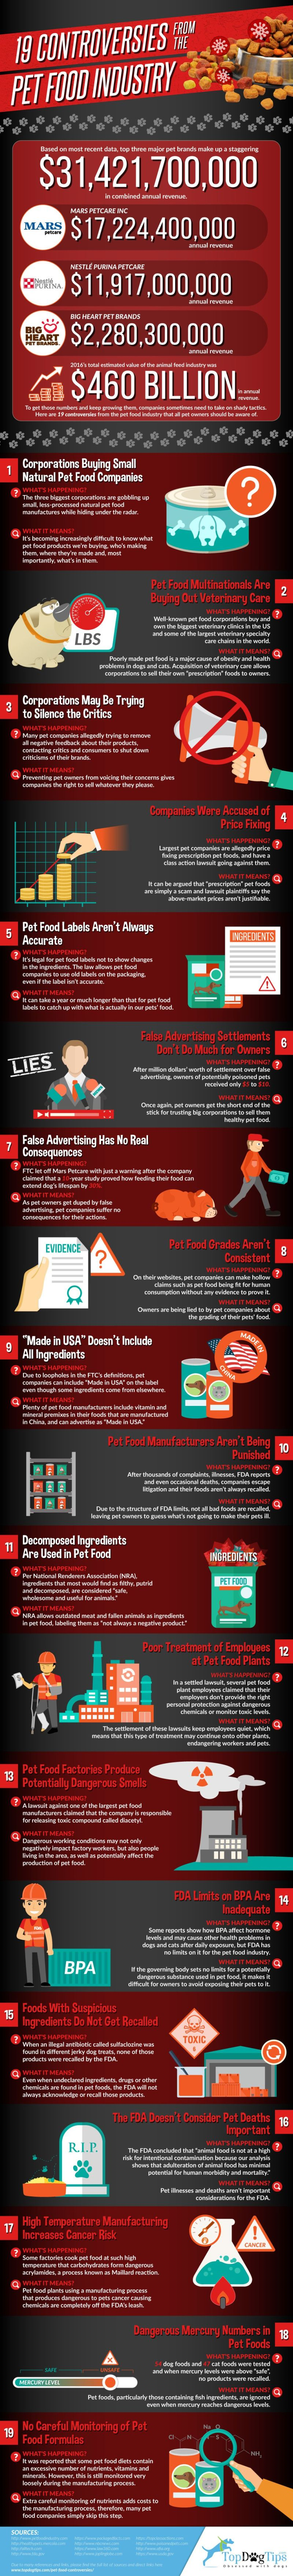 Check out this infographic listing 19 pet food controversies you may not be aware of surrounding the pet food industry in the past few years.